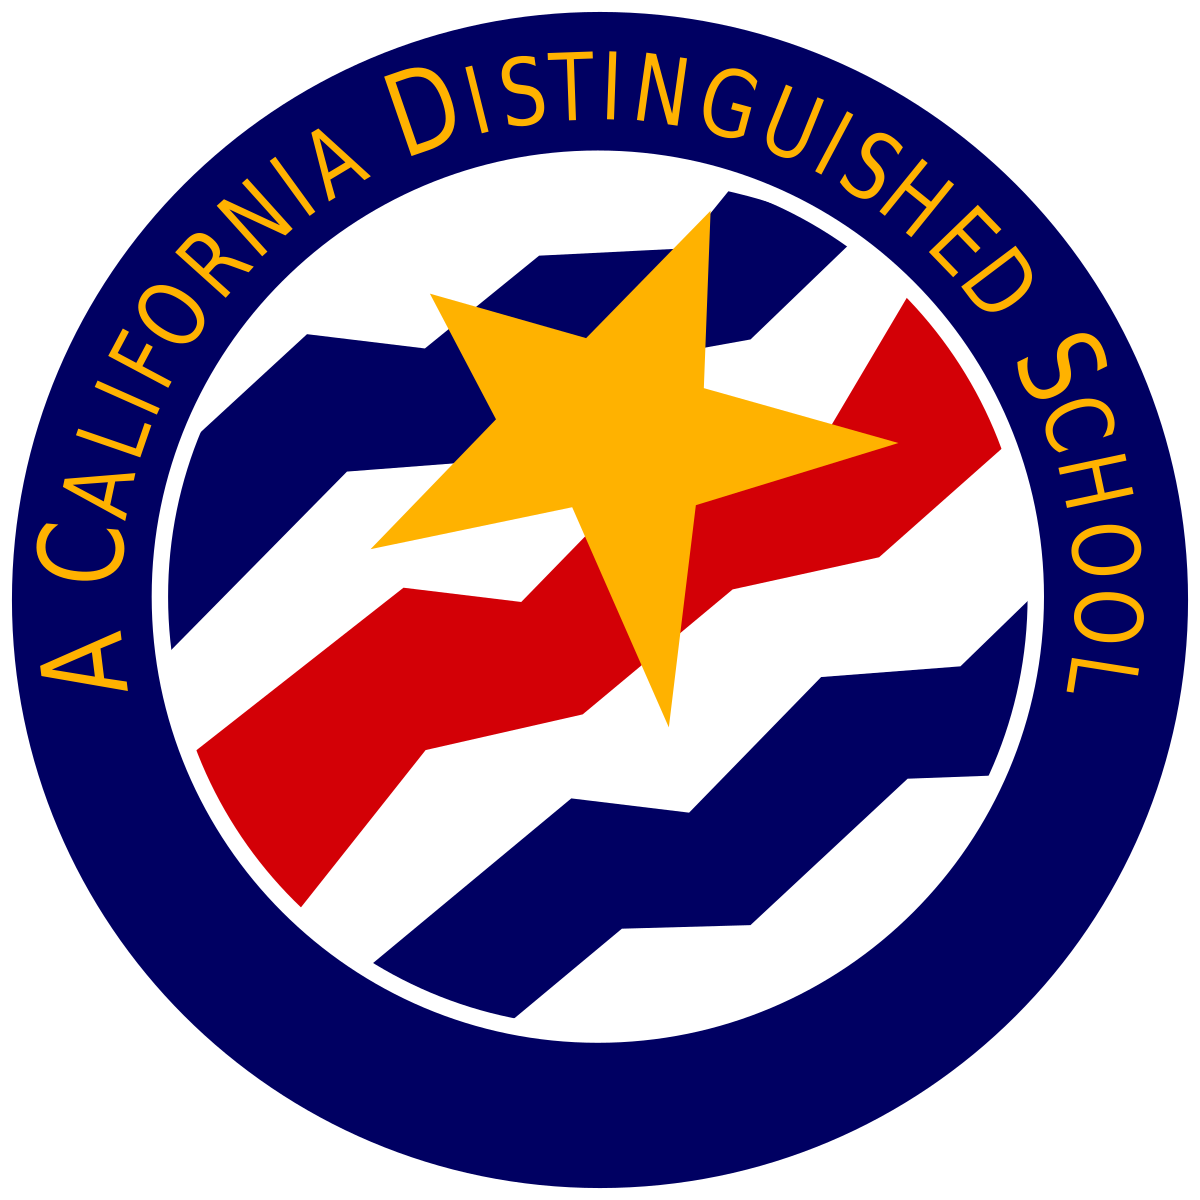 California Distinguished School